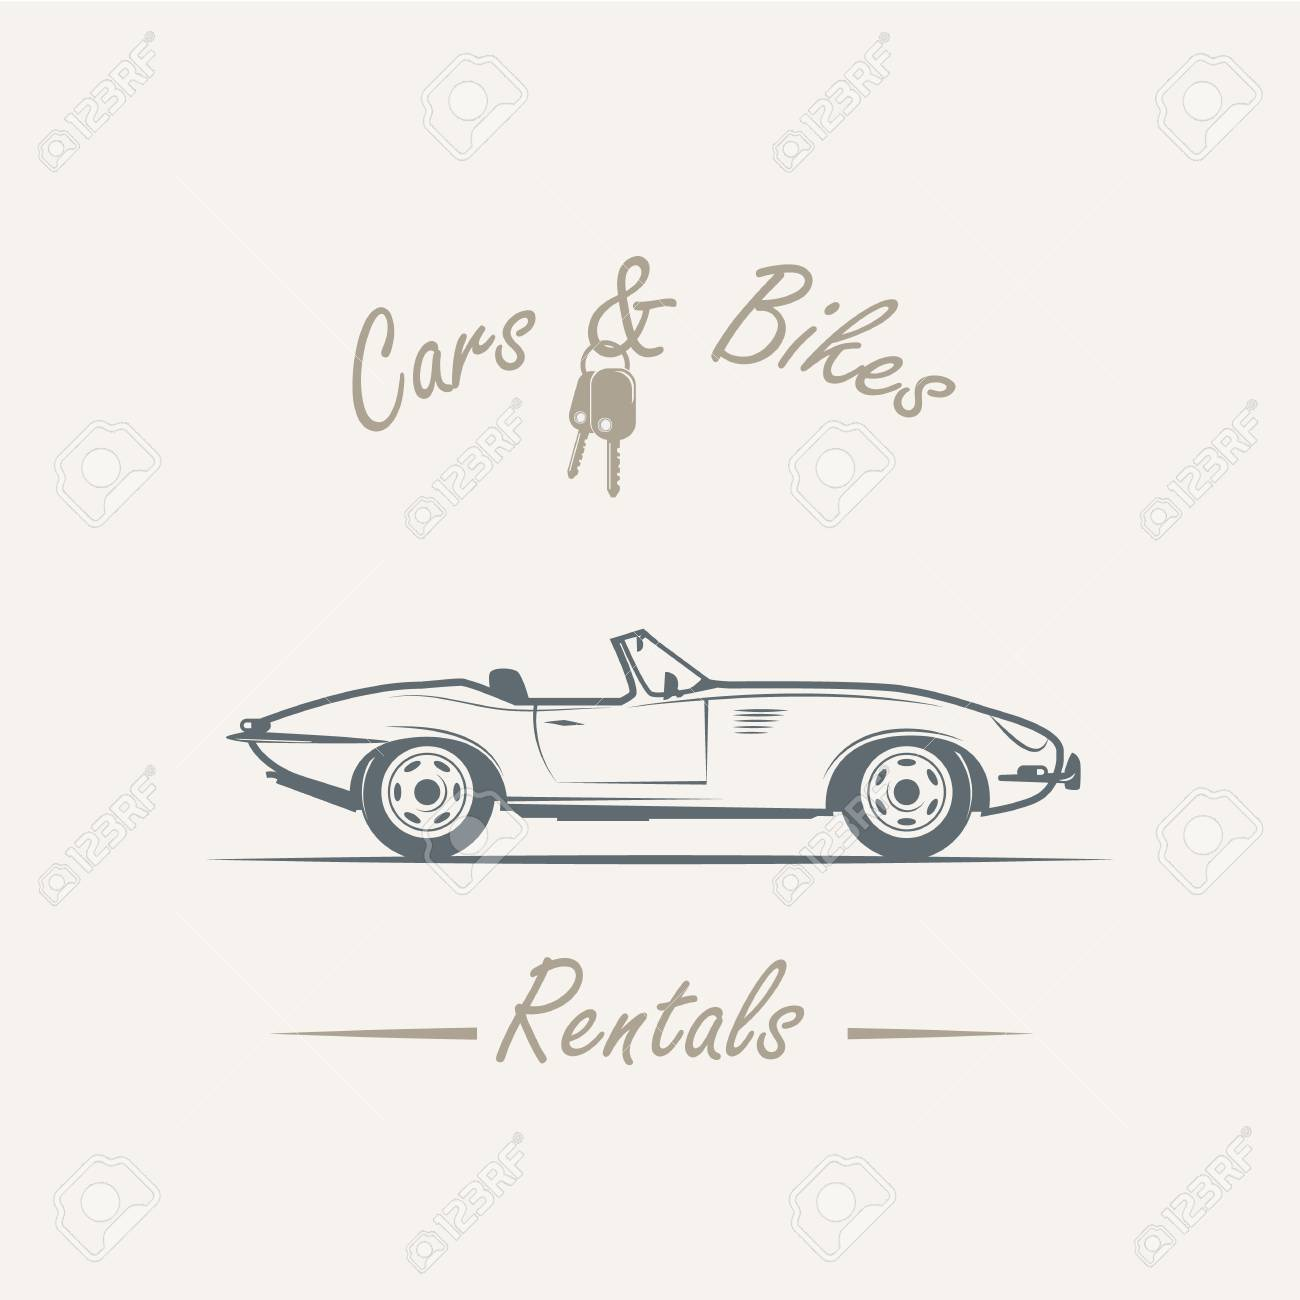 Car In Vintage Style Vector Illustration Logo Royalty Free Cliparts Vectors And Stock Illustration Image 75006755